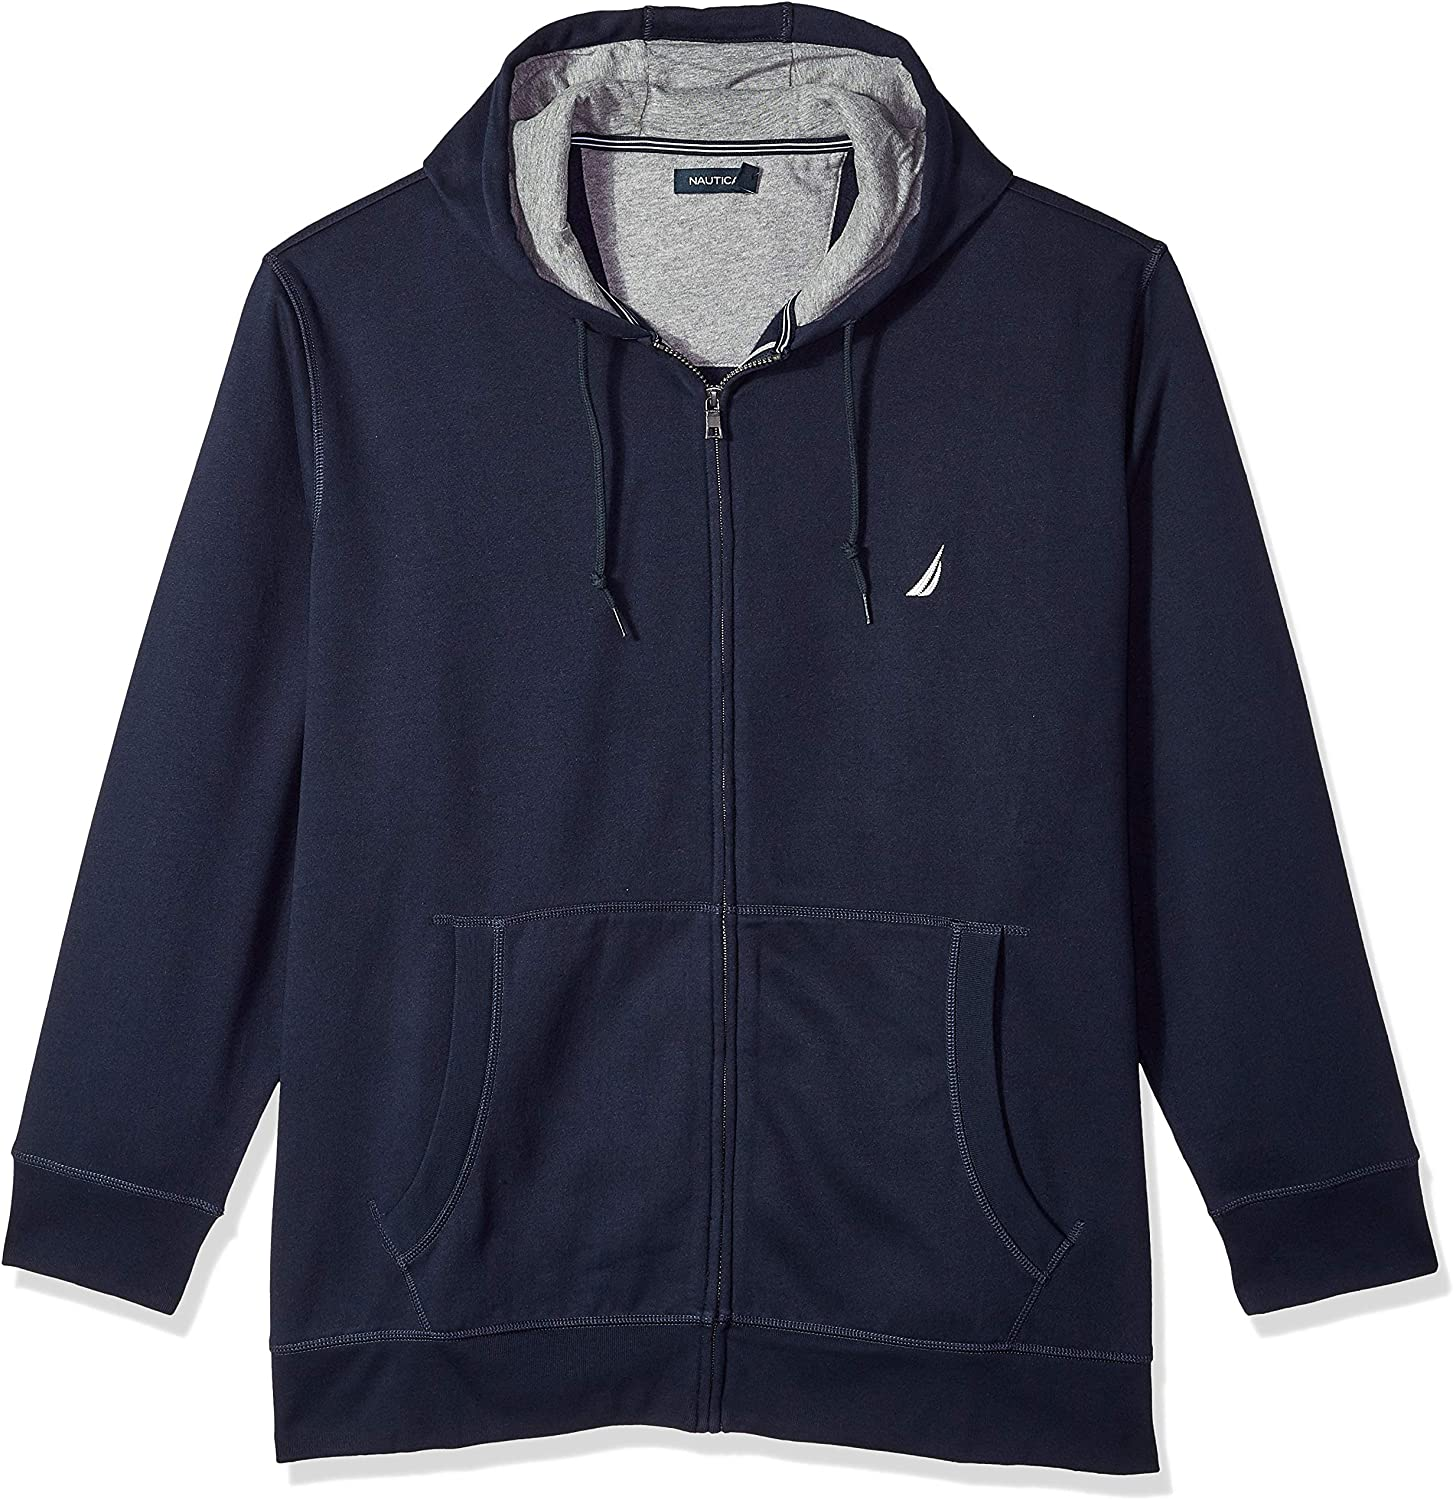 Nautica Mens Big and Tall Full-Zip Sweater Hoodie Sweatshirt